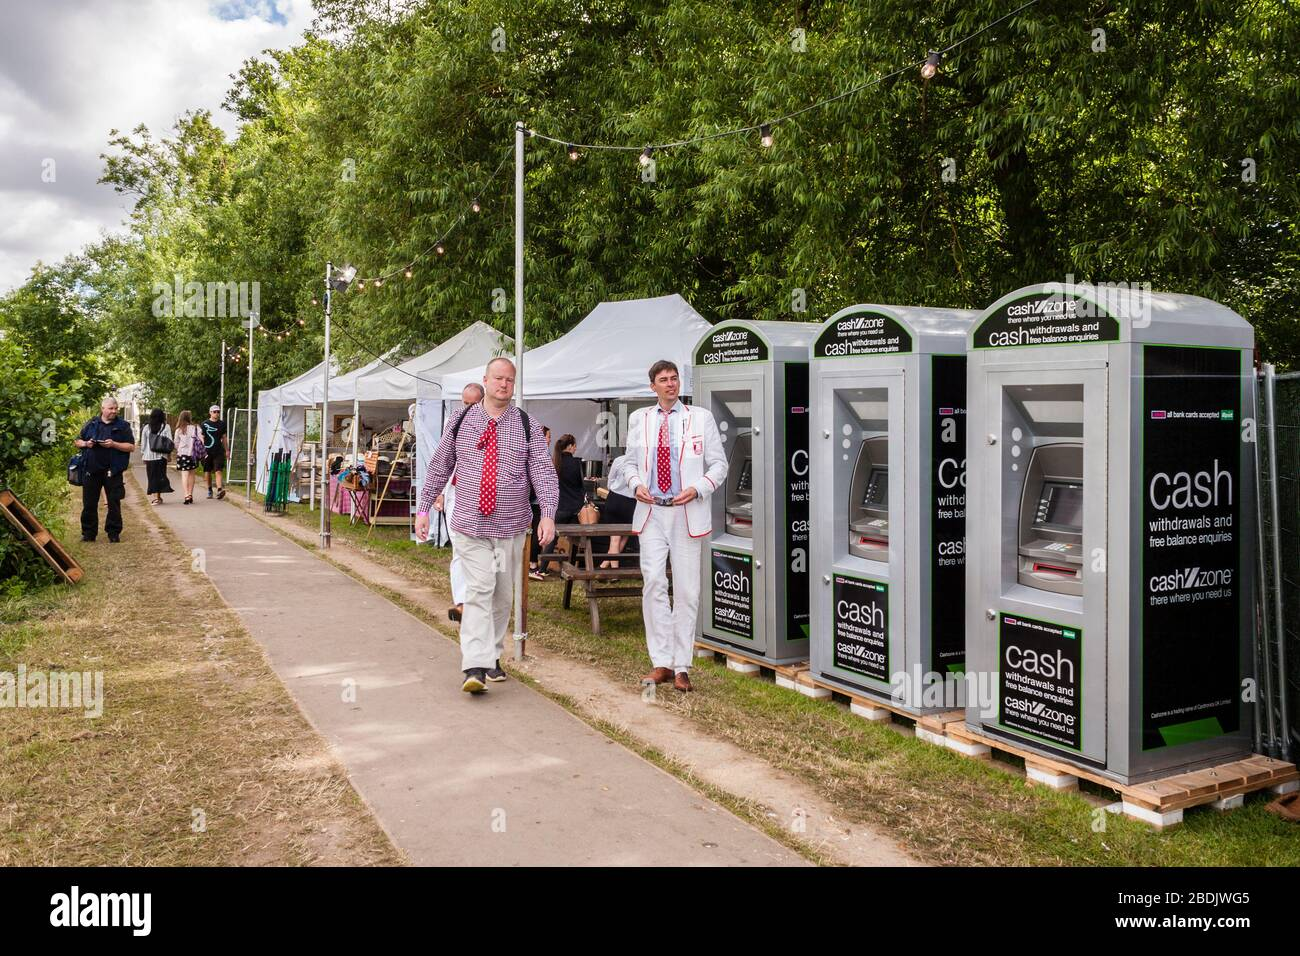 ATM cash dispensers on the towpath at Henley Royal Regatta Stock Photo